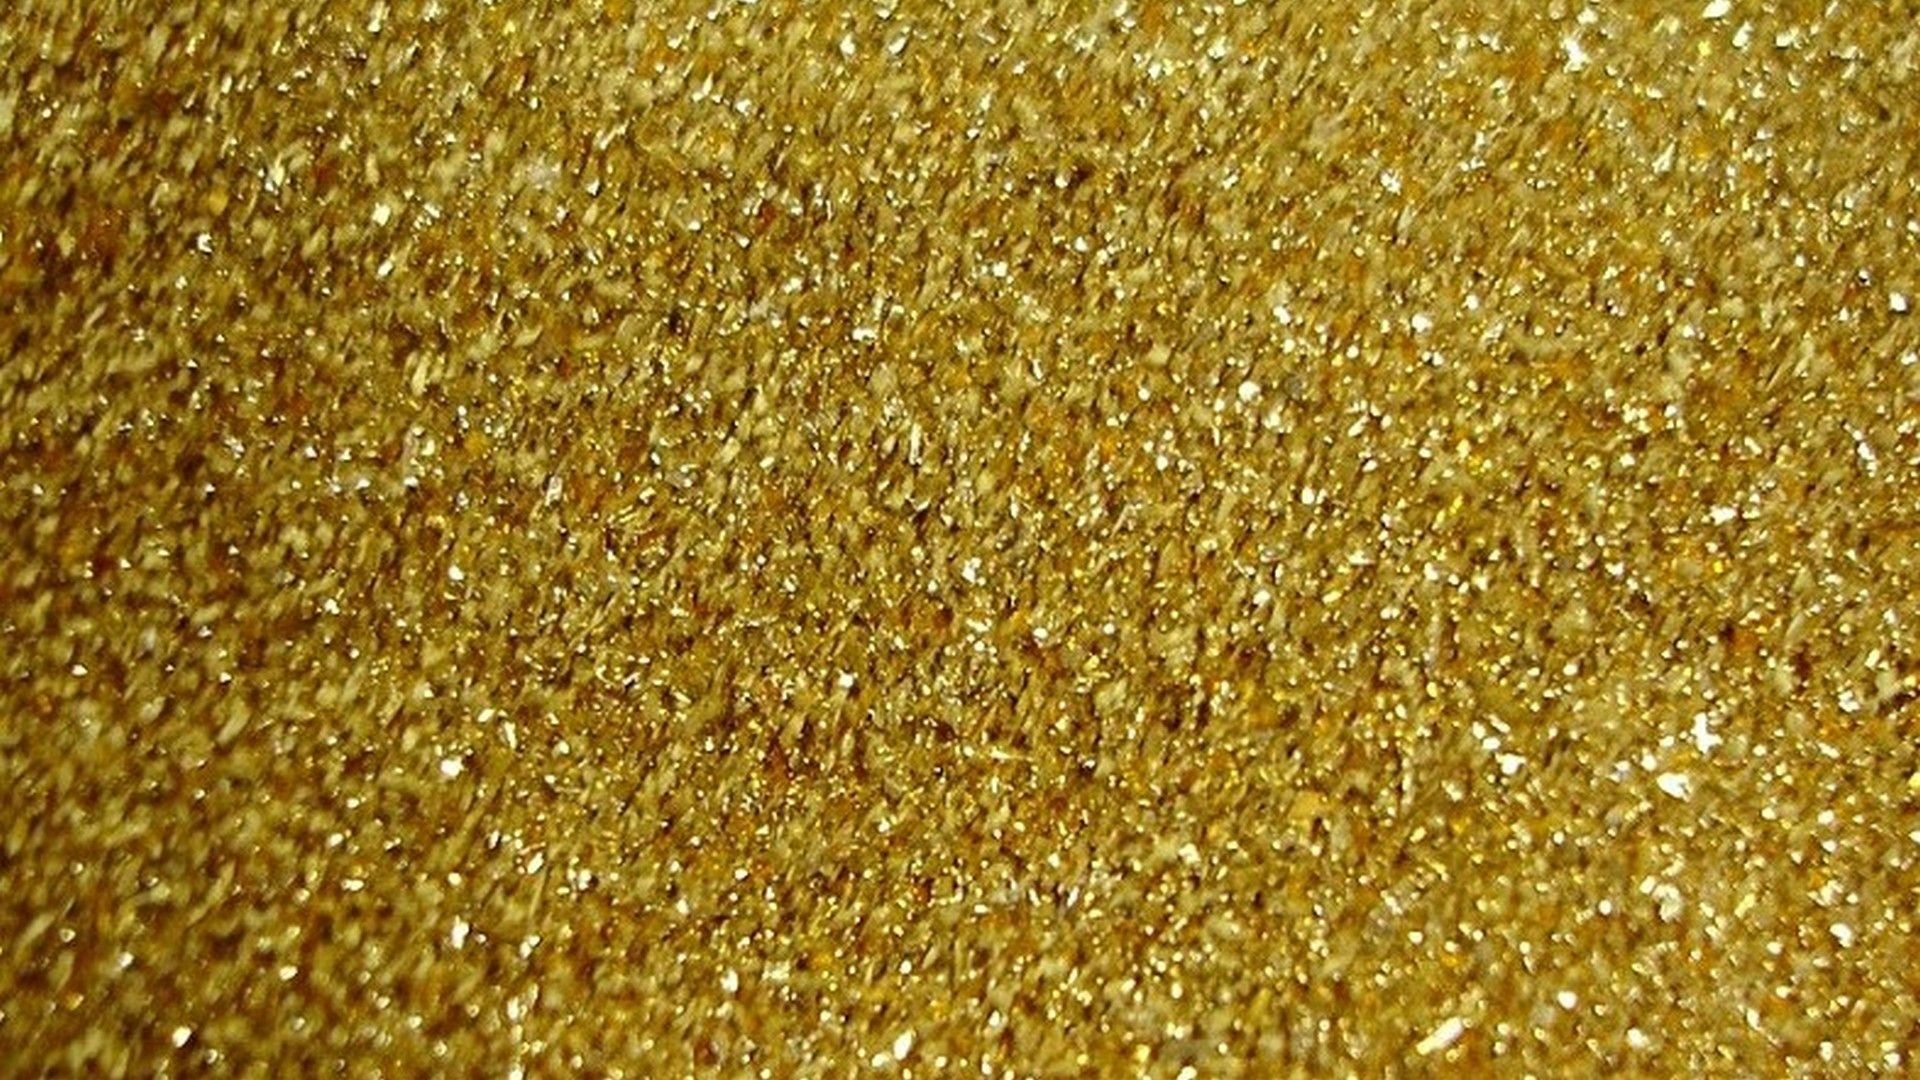 Pink And Gold Glitter Iphone Wallpaper: Gold Glitter Wallpaper Iphone